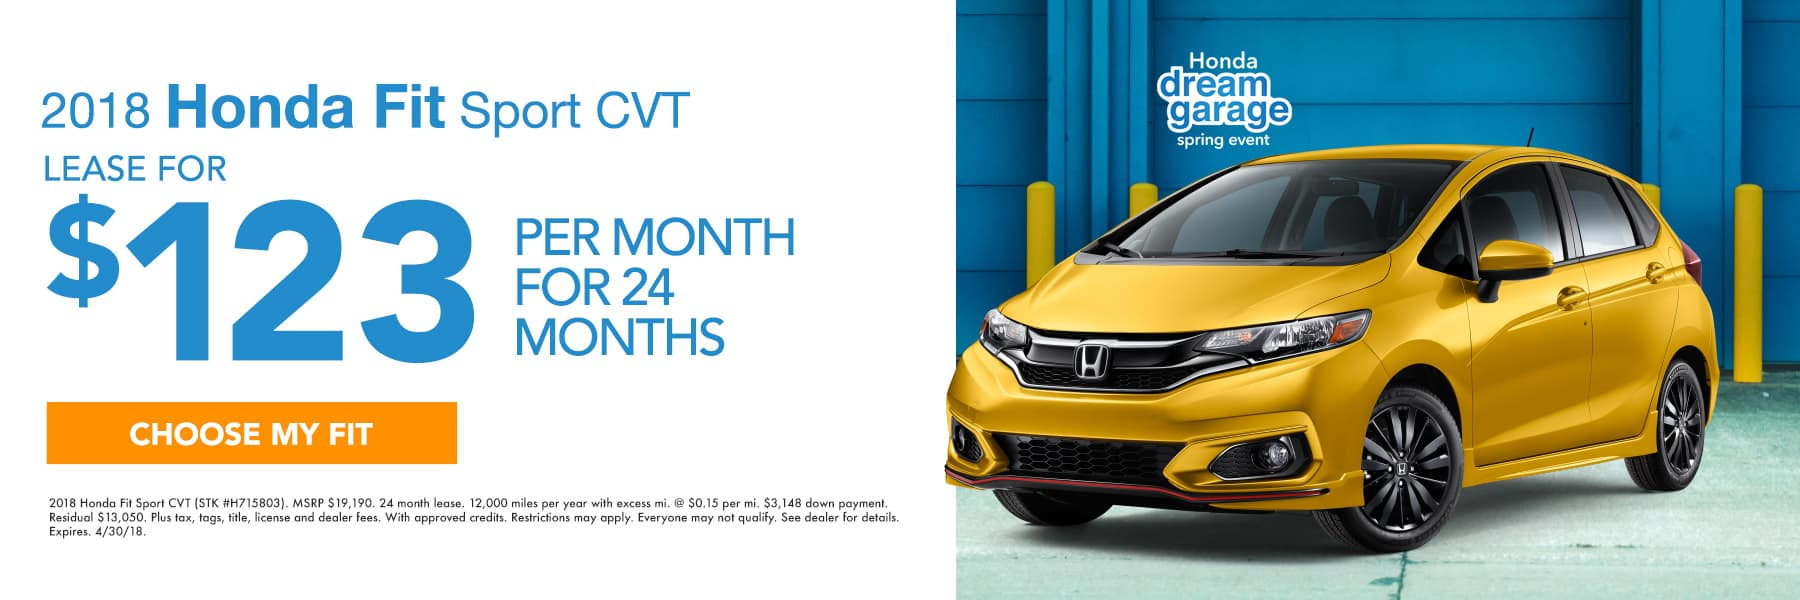 2018 Honda Fit Sport CVT - Lease For $123 Per Month For 24 Months - Choose My Fit - Expires 4/30/2018